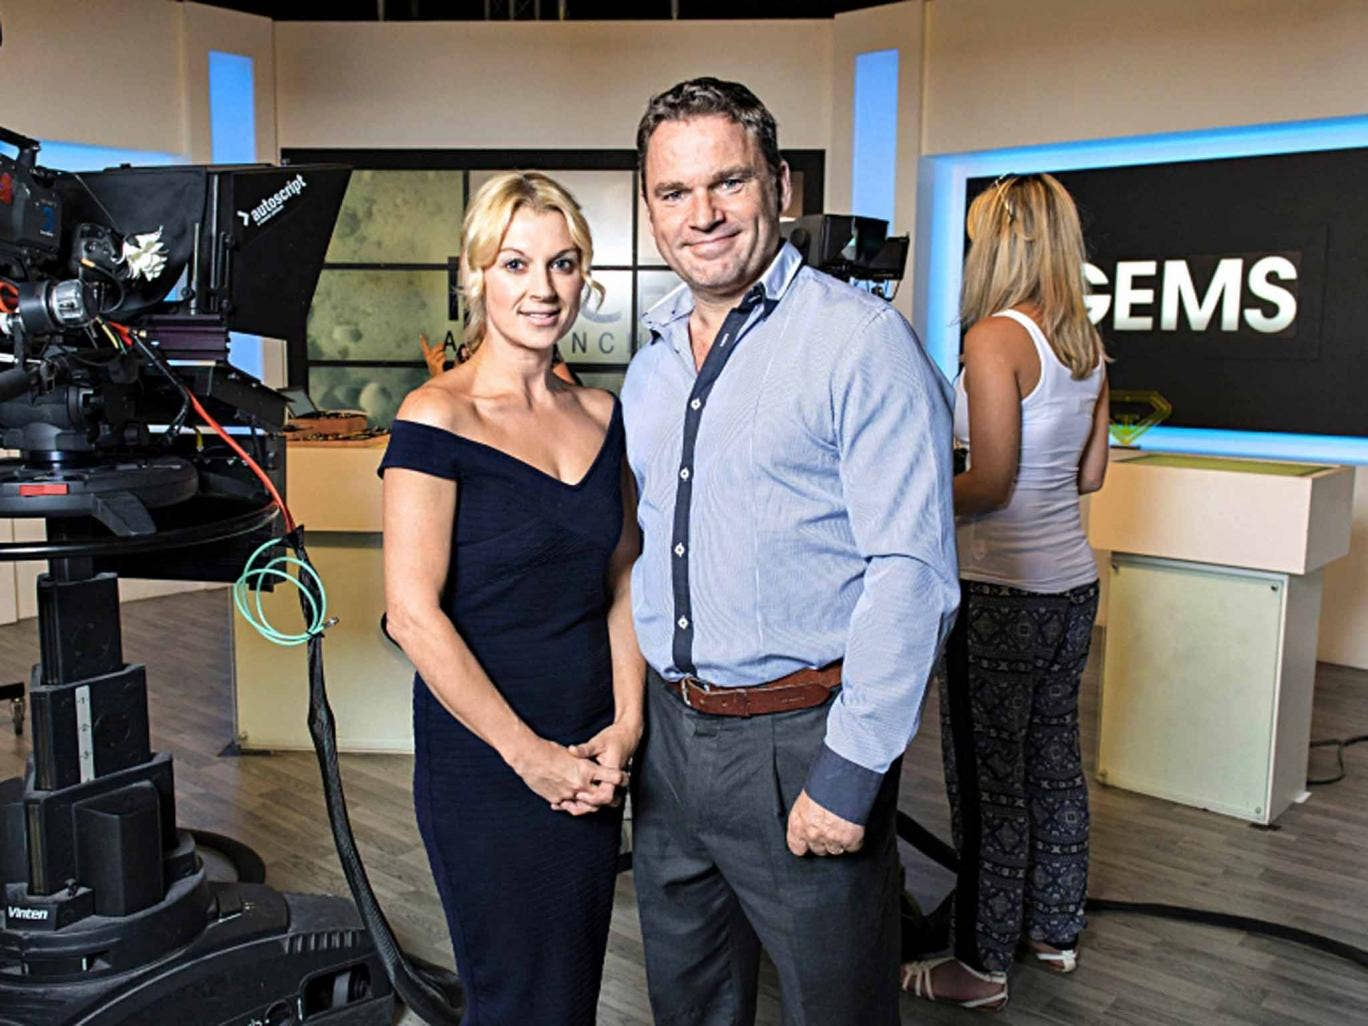 Precious moments: husband-and-wife team Sarah and Steve Bennett in 'Gems TV'